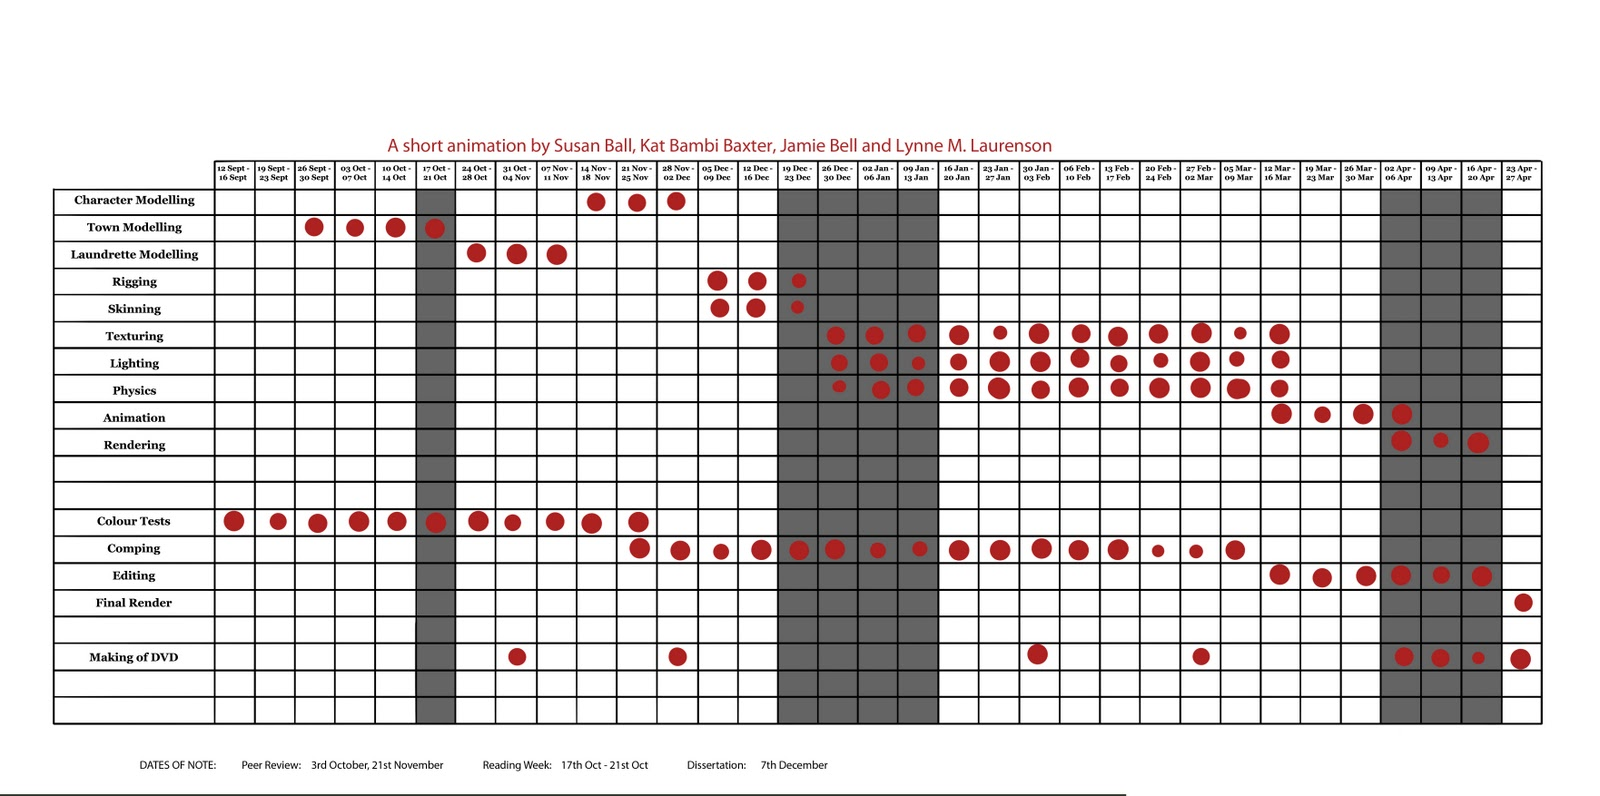 Contamination Animation Production Schedules